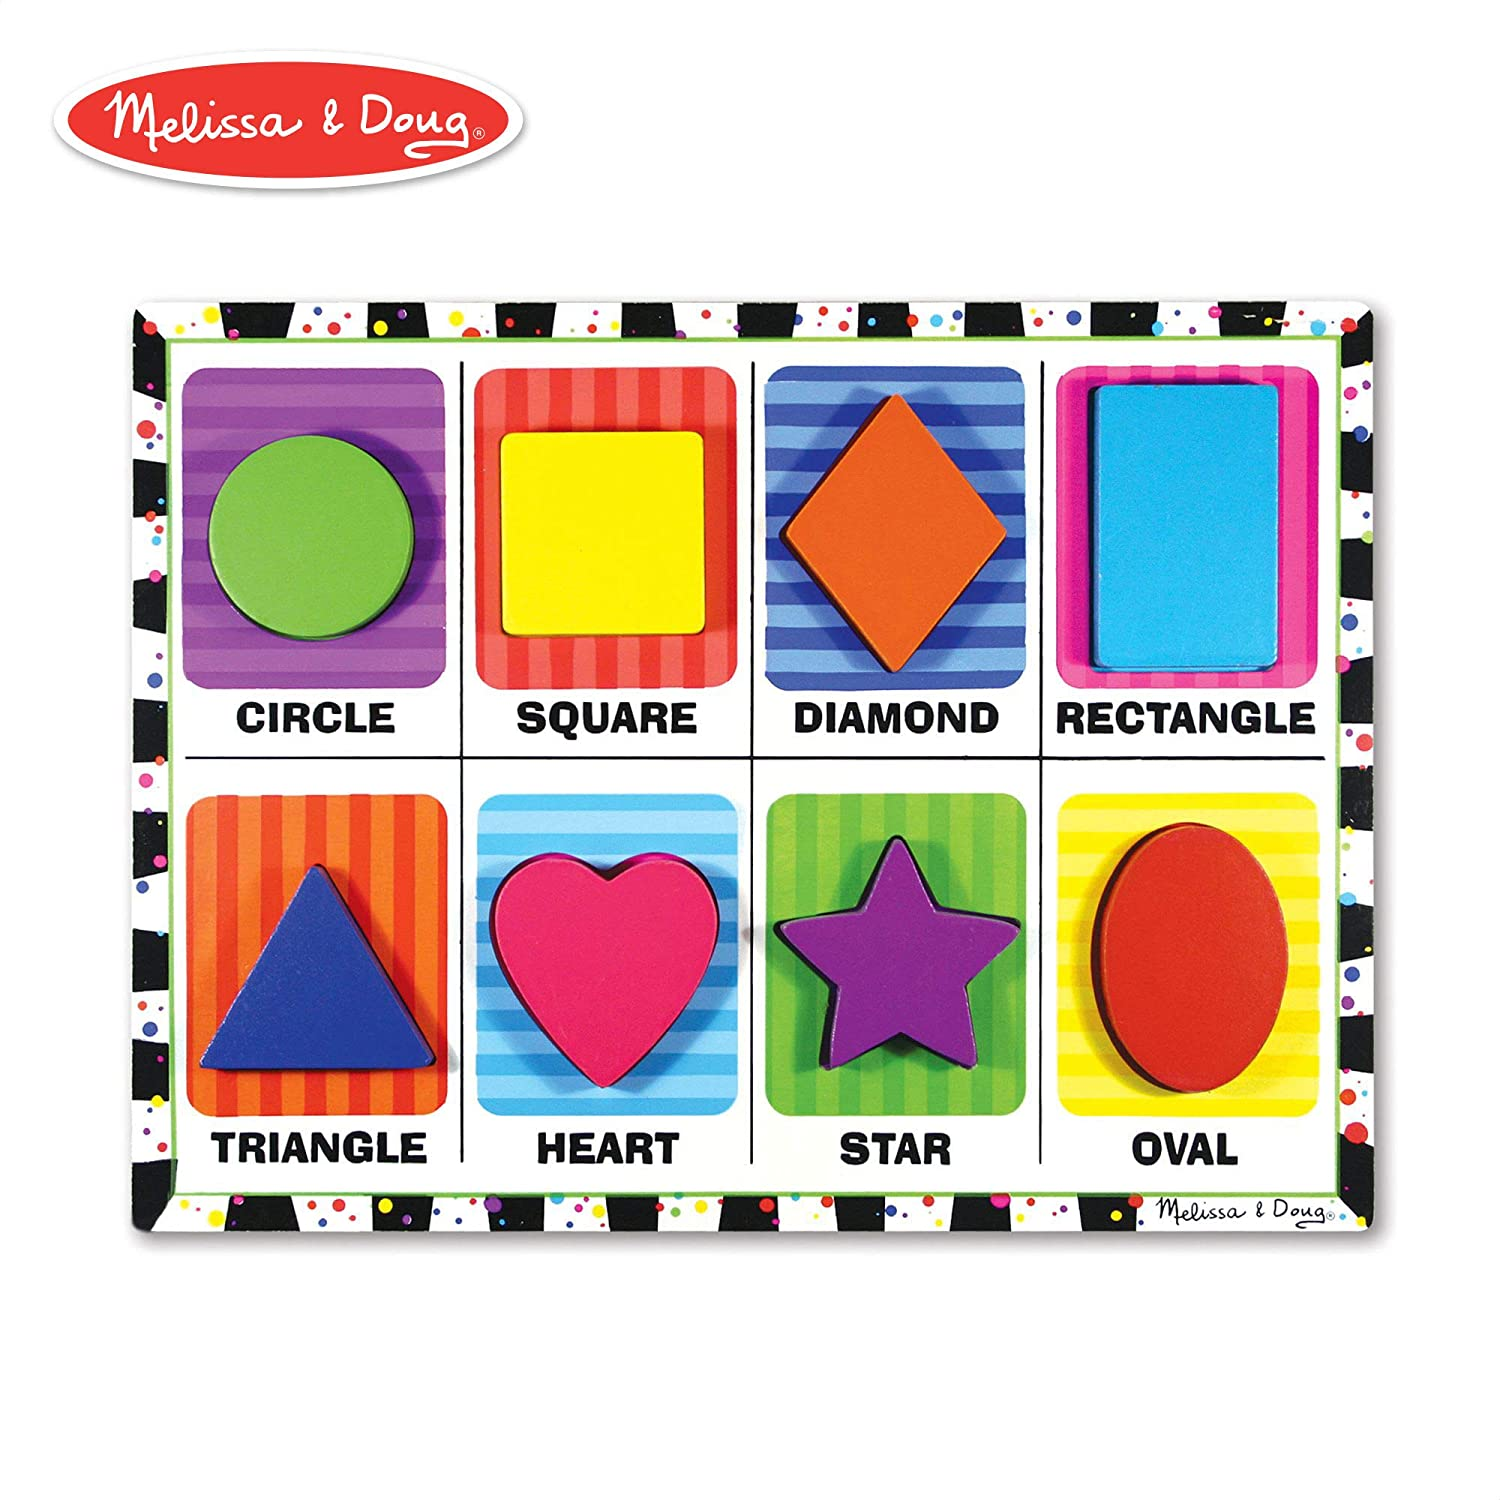 """Melissa & Doug Shapes Chunky Puzzle, Preschool, Chunky Wooden Pieces,  Full-Color Pictures, 8 Pieces, 12"""" H x 11"""" W x 0.9"""" L"""